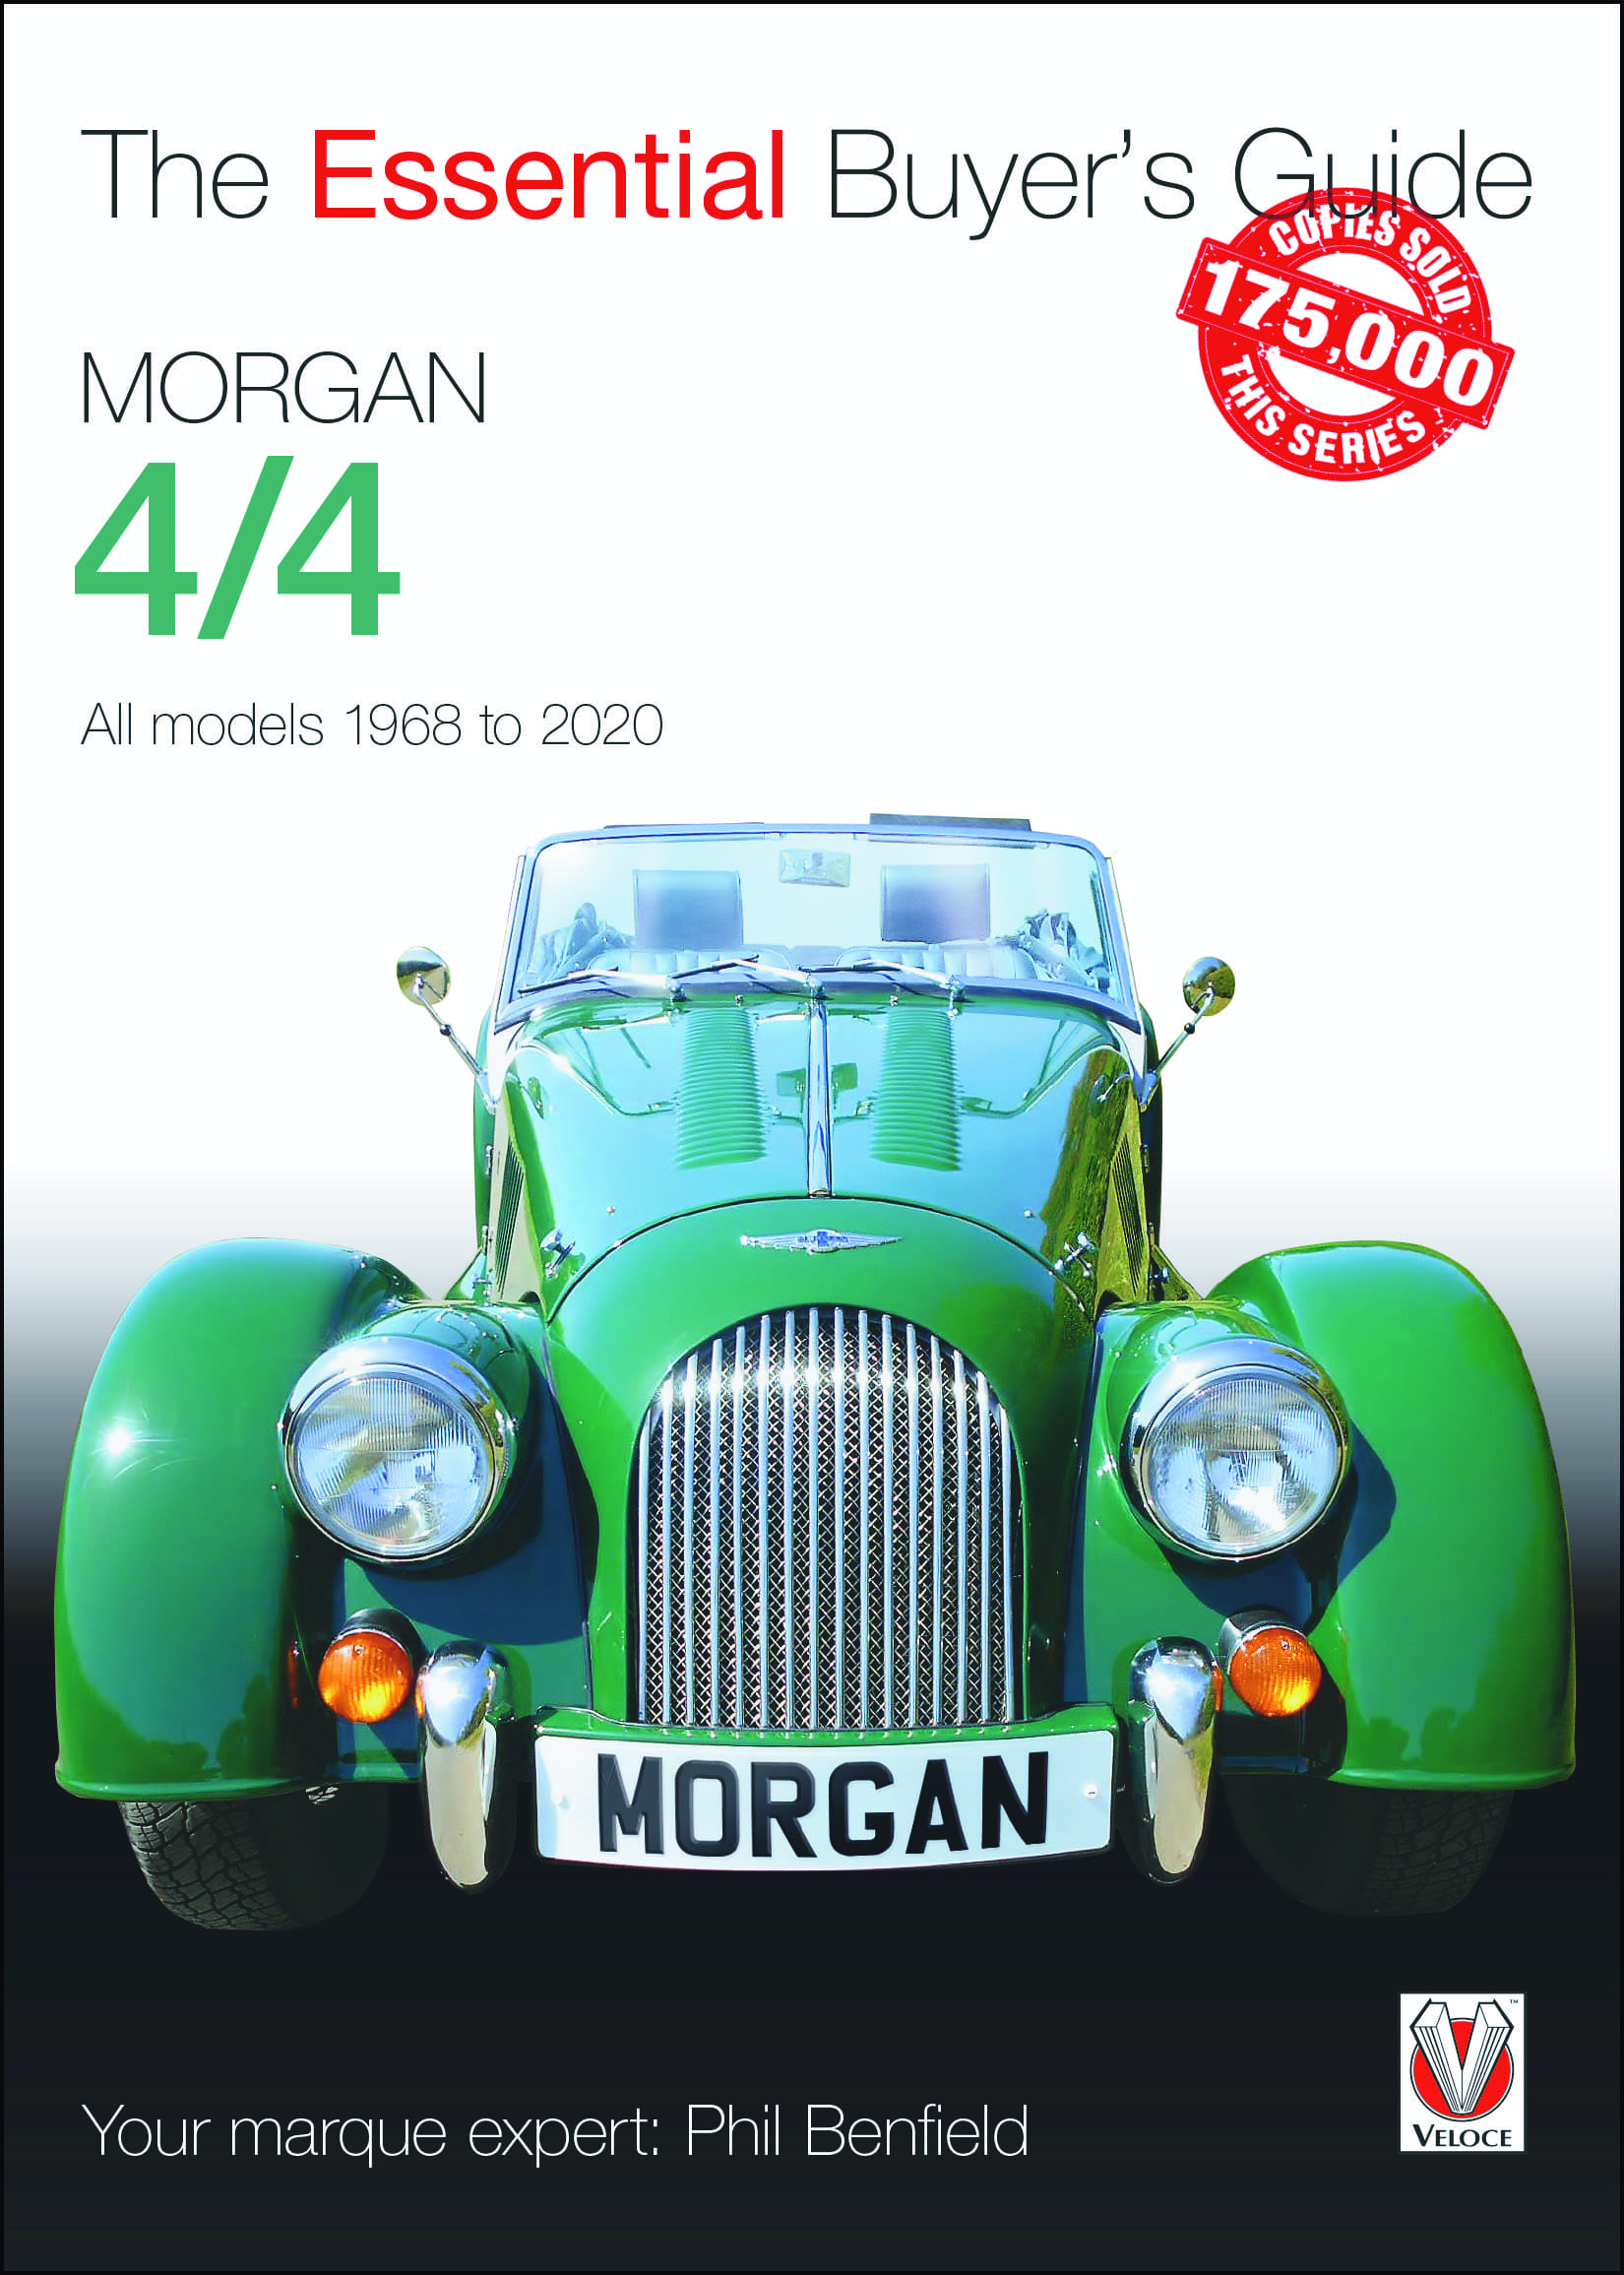 Morgan 4/4 – All models 1968-2020 – The Essential Buyer's Guide